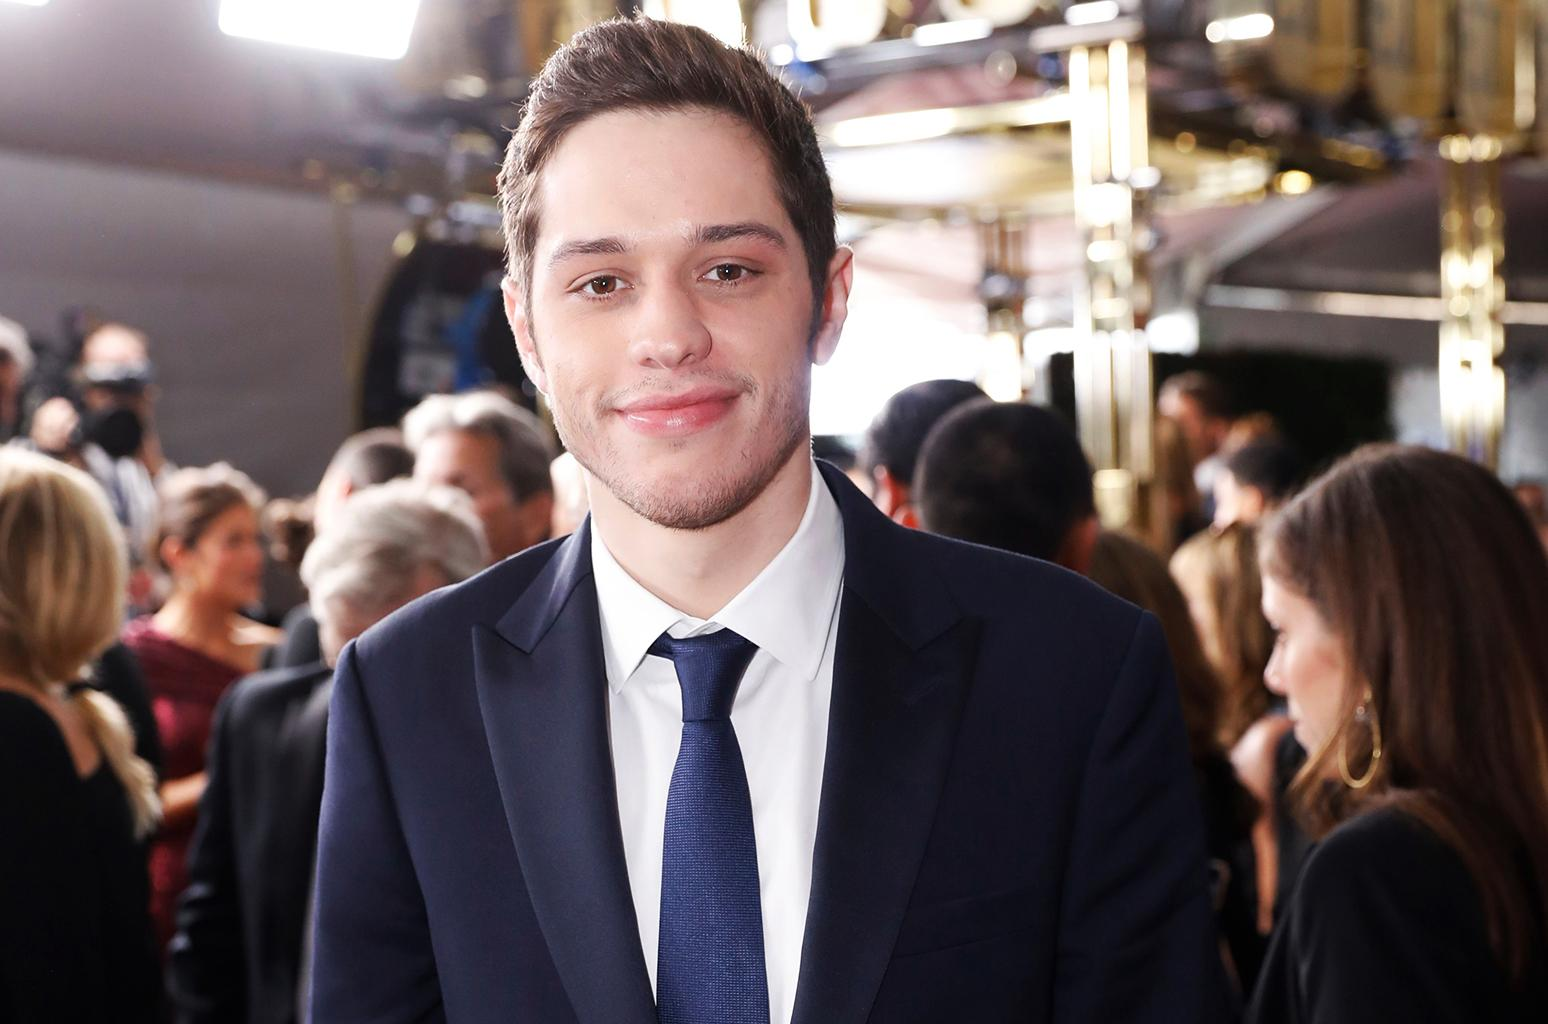 Pete Davidson Is Accounted For After Posting Suicidal Messages To Social Media: NYPD Says He Is On Set At 'SNL'